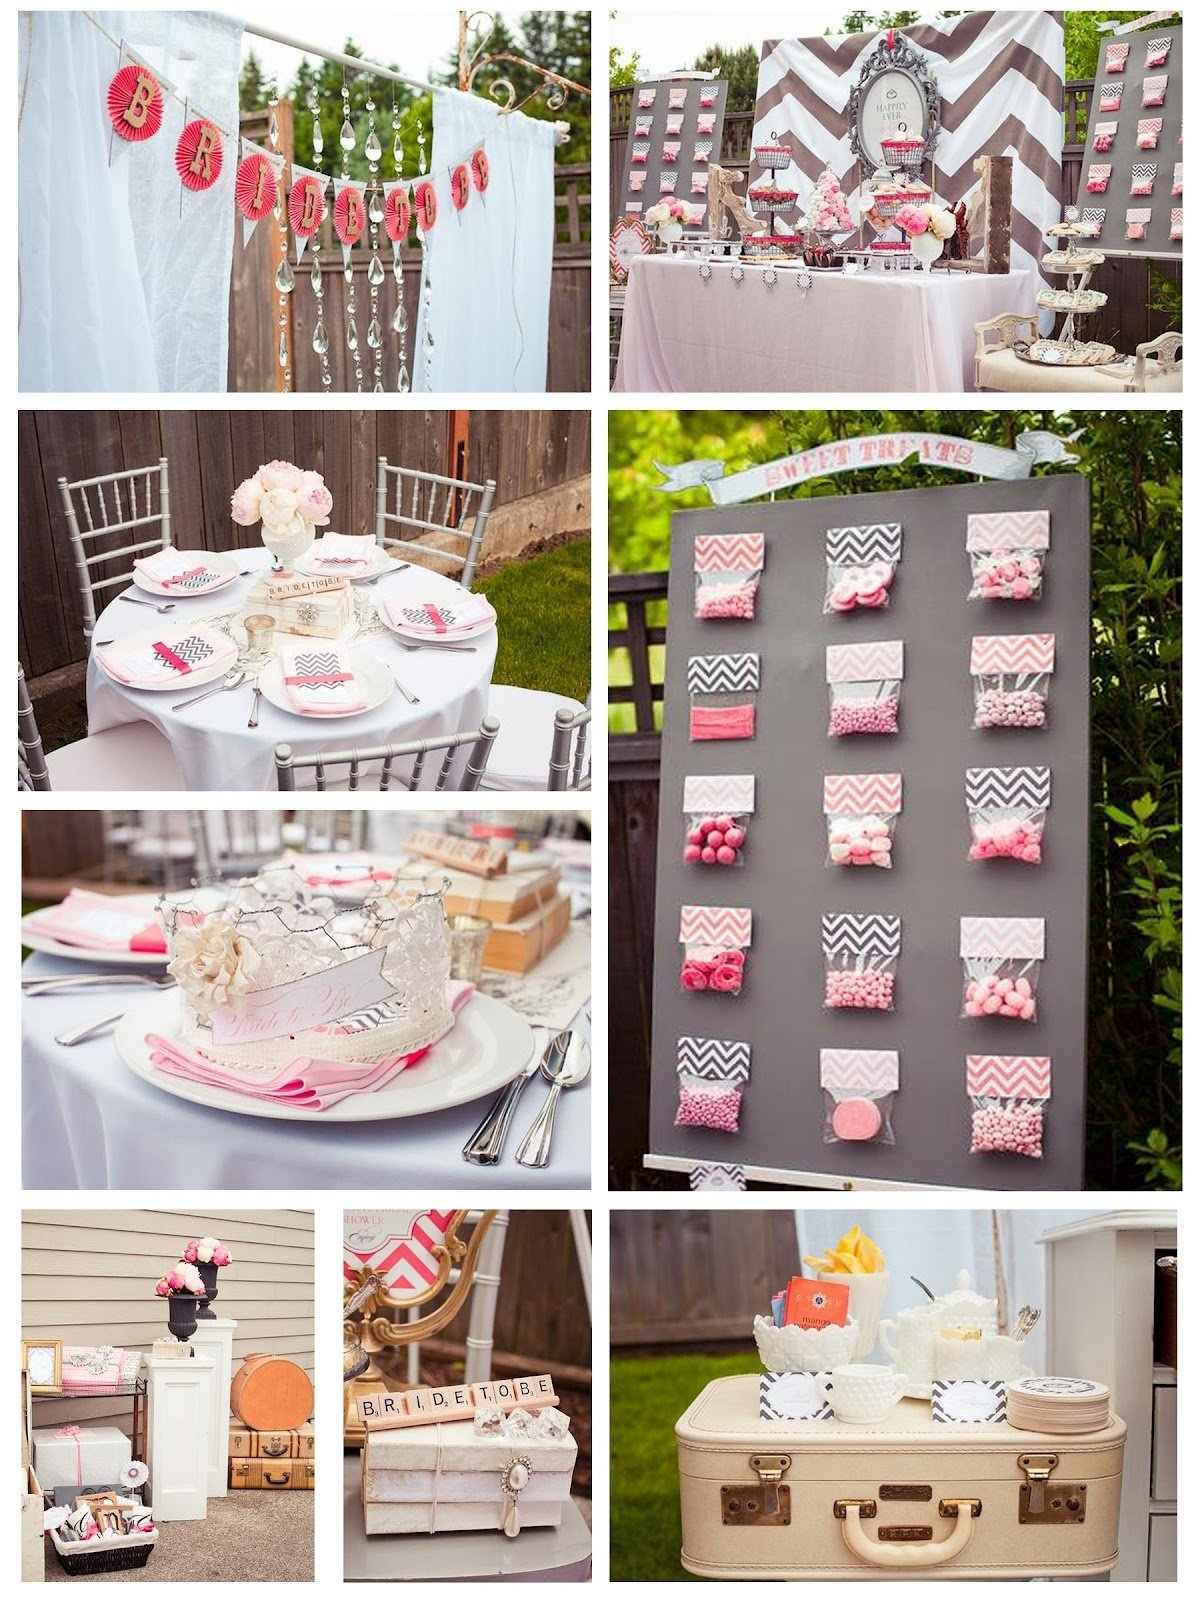 10 Attractive Bridal Shower Ideas On A Budget photo bridal shower ideas kinky image 1 2020